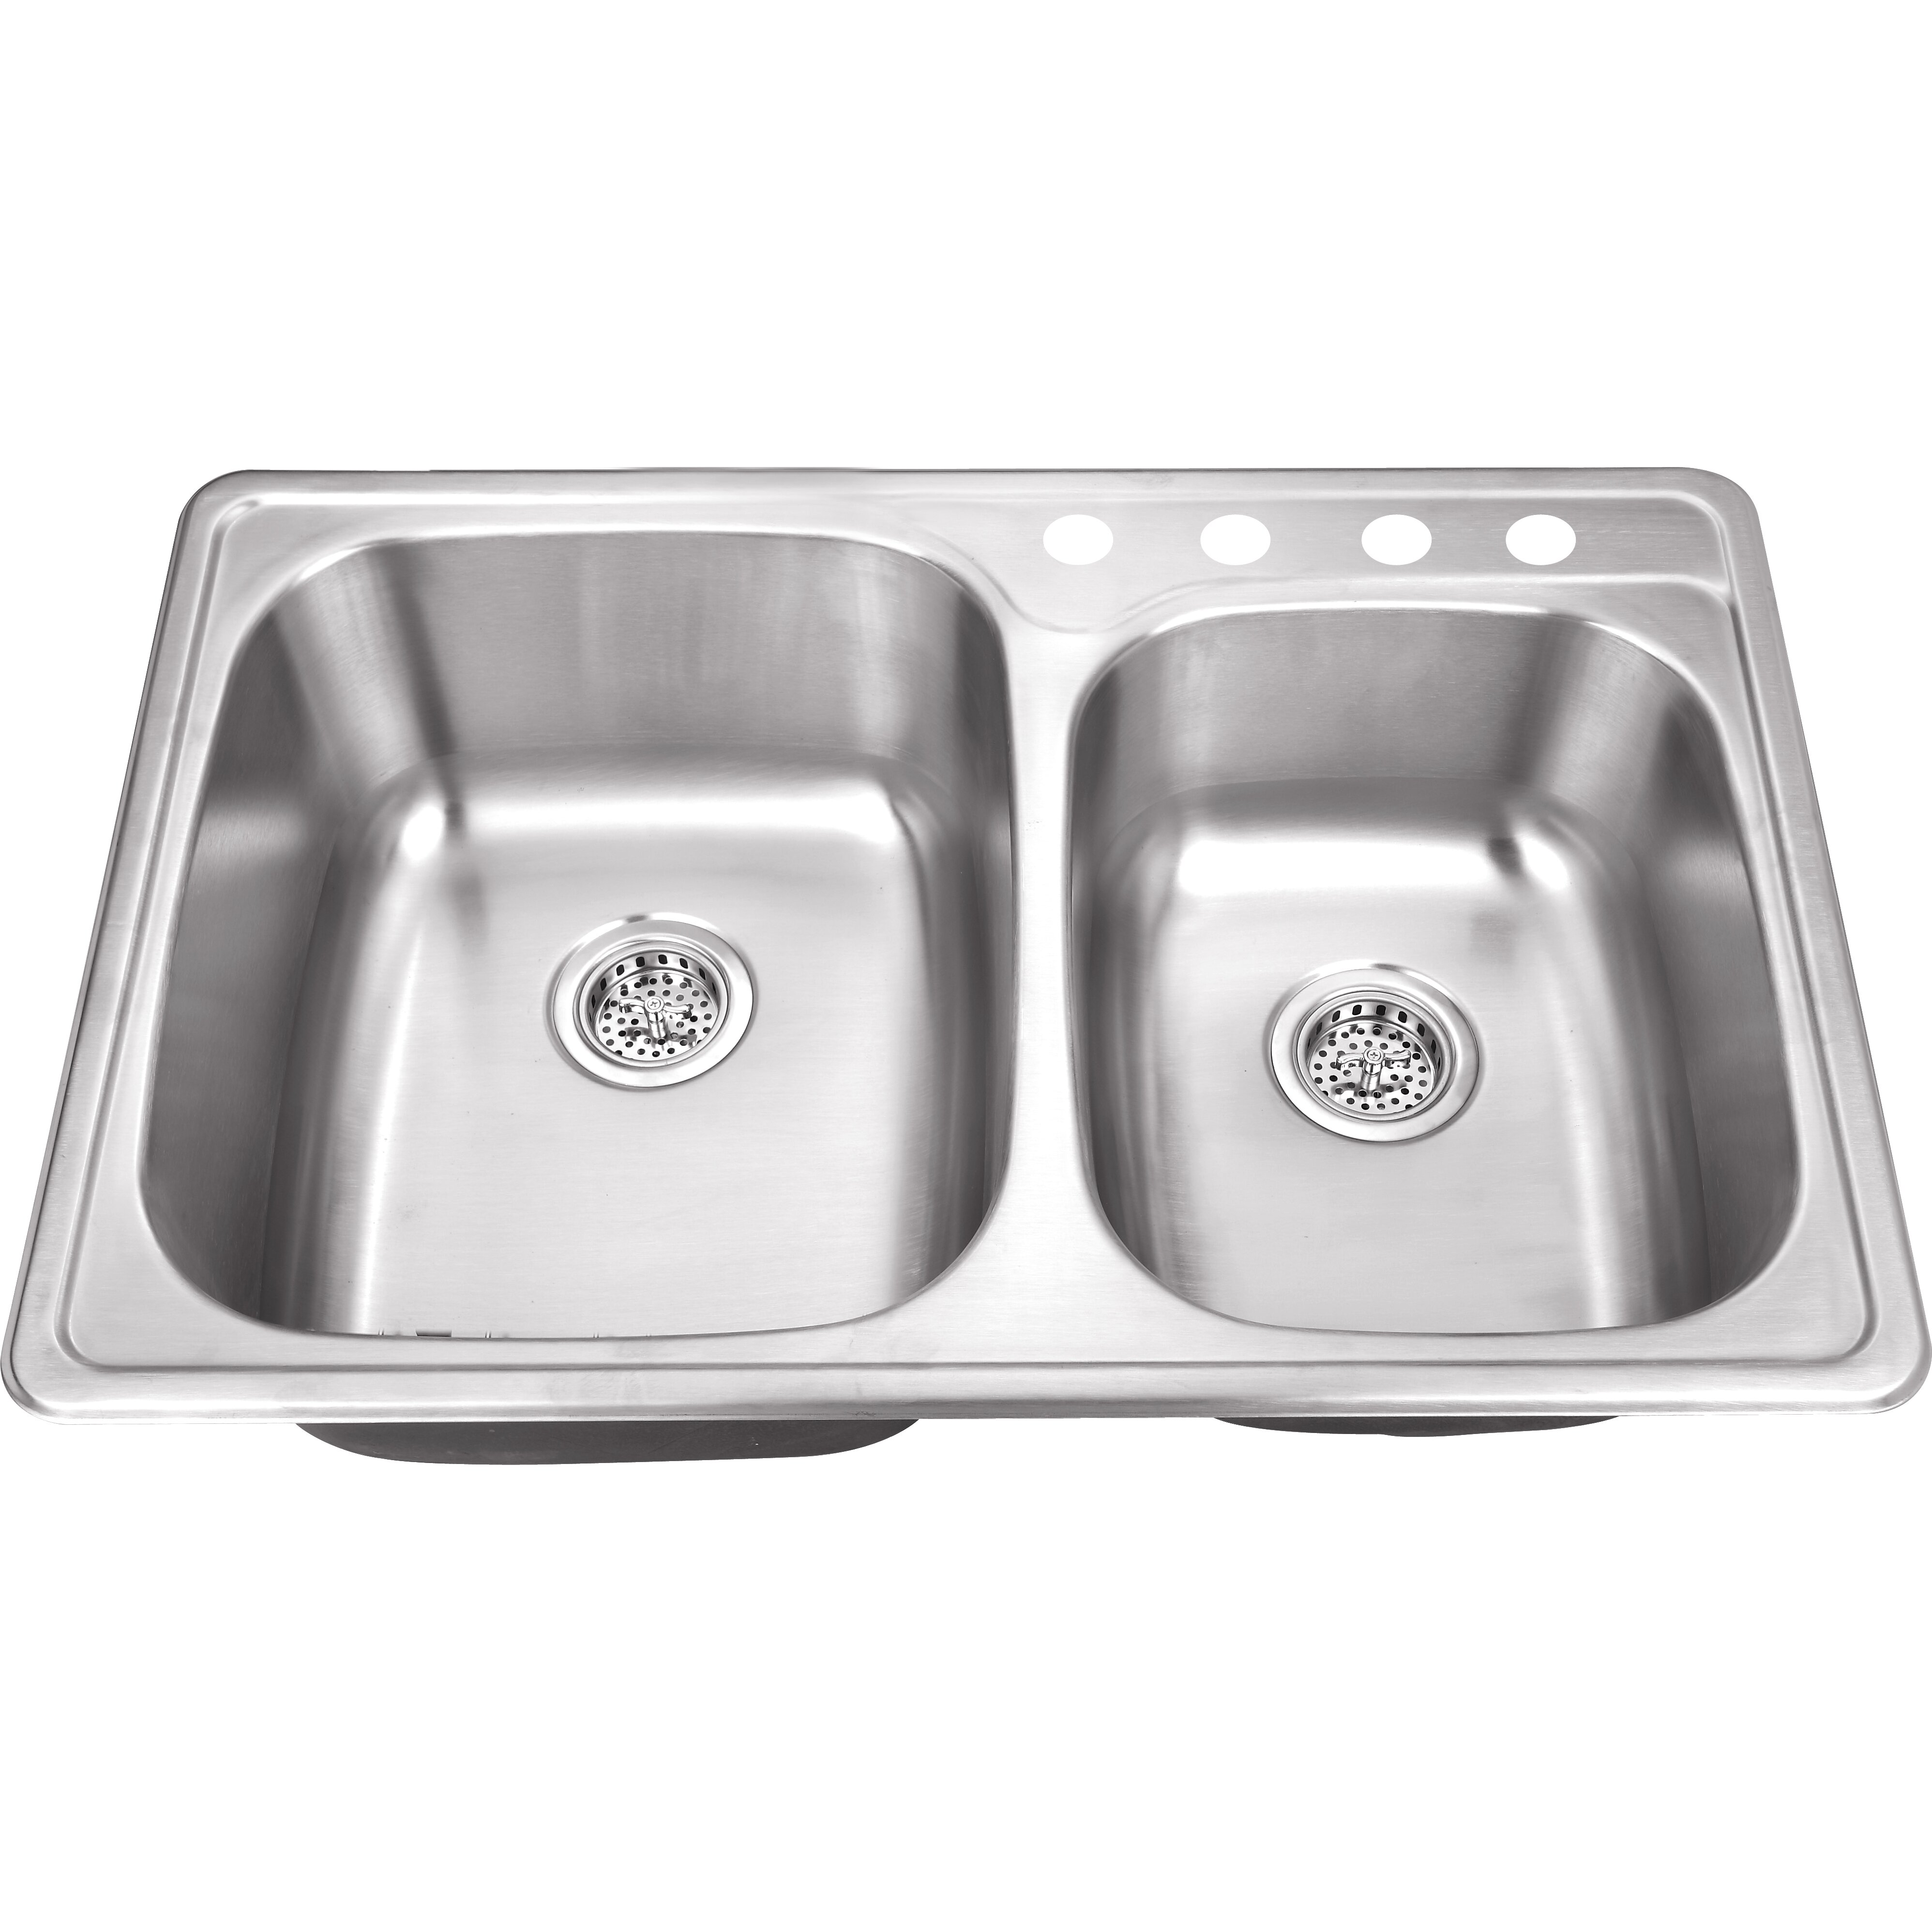 Soleil 33 X 22 Stainless Steel Drop In Double Bowl Kitchen Sink Reviews Wayfair